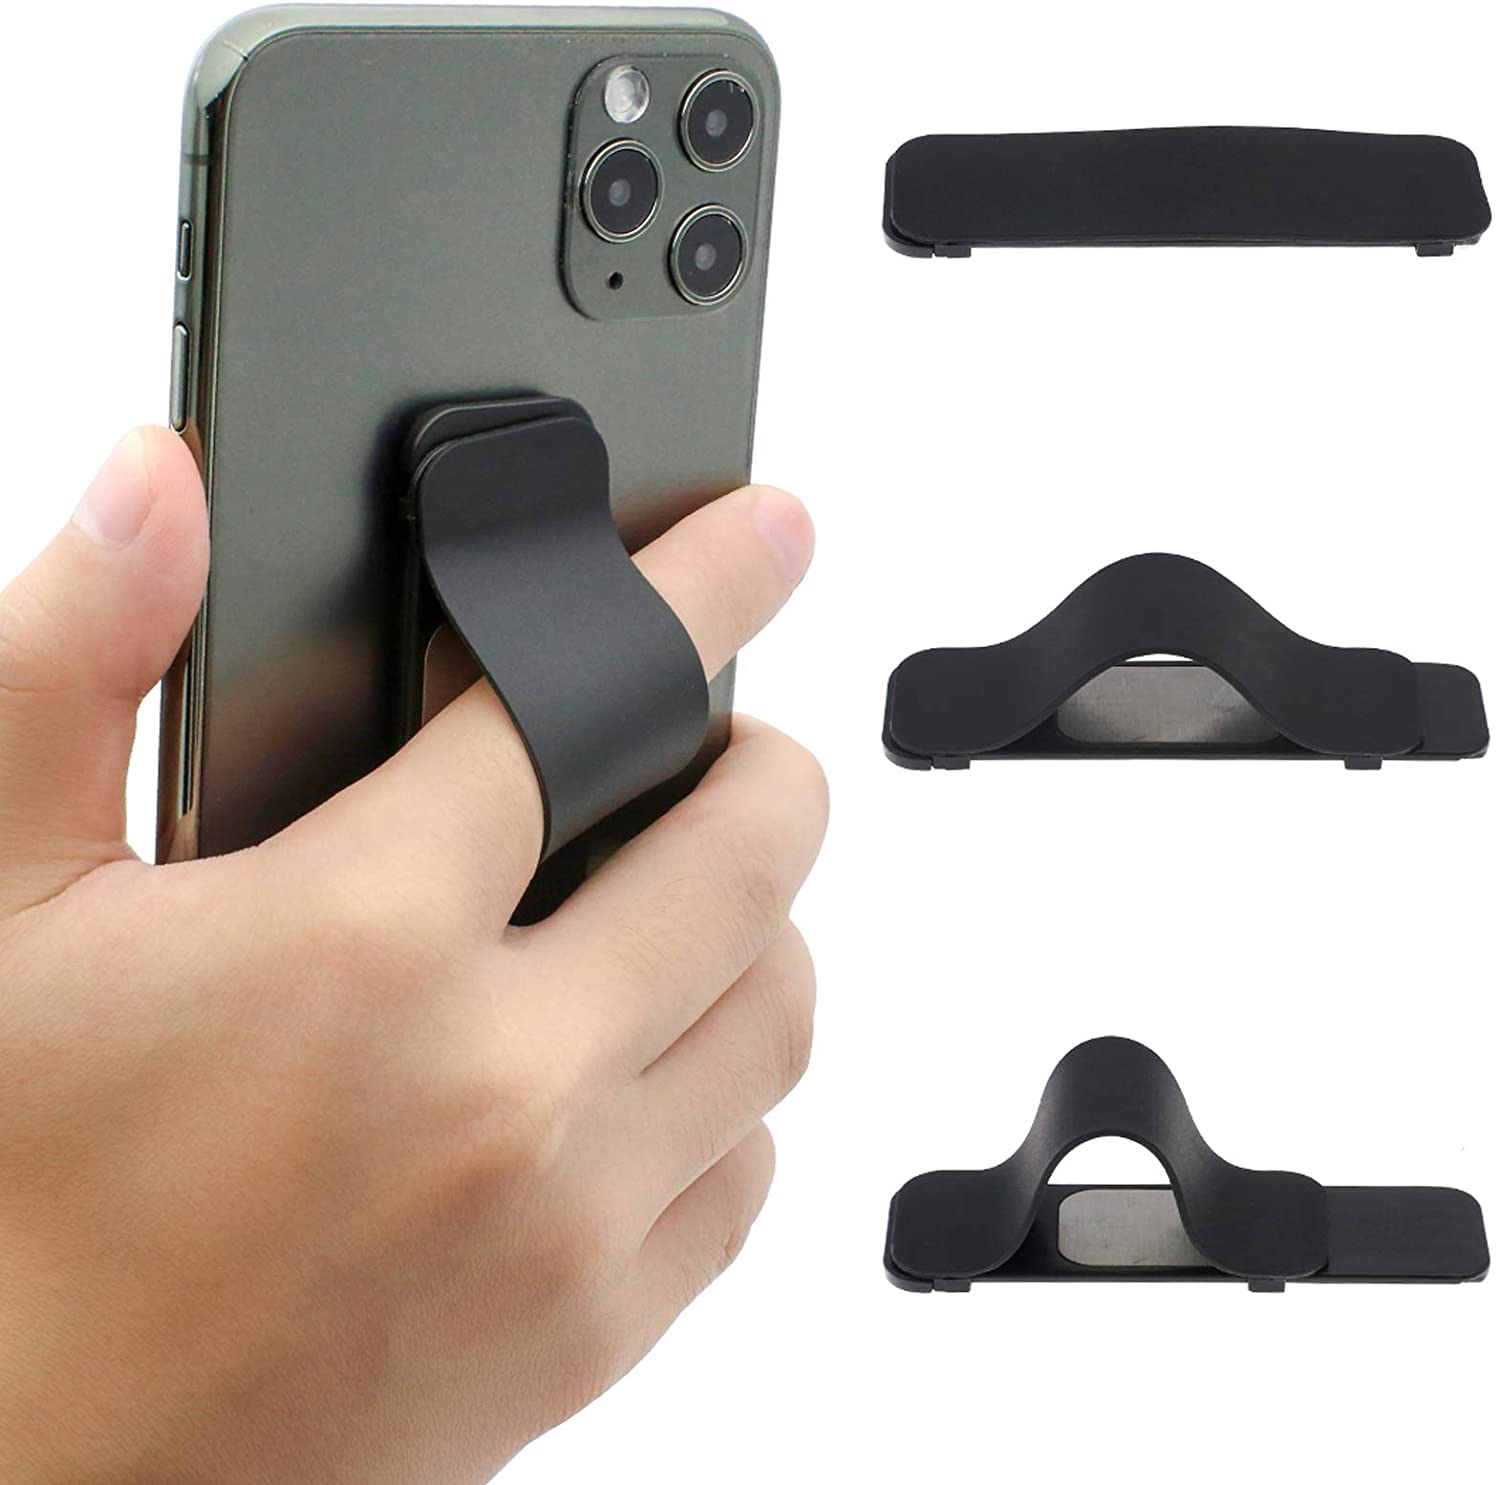 Finger Strap Phone Holder, AOLIY Cell Phone Grip Stand for iPhone Android Smartphone Mini Tablet Car Vent Holder (Black)